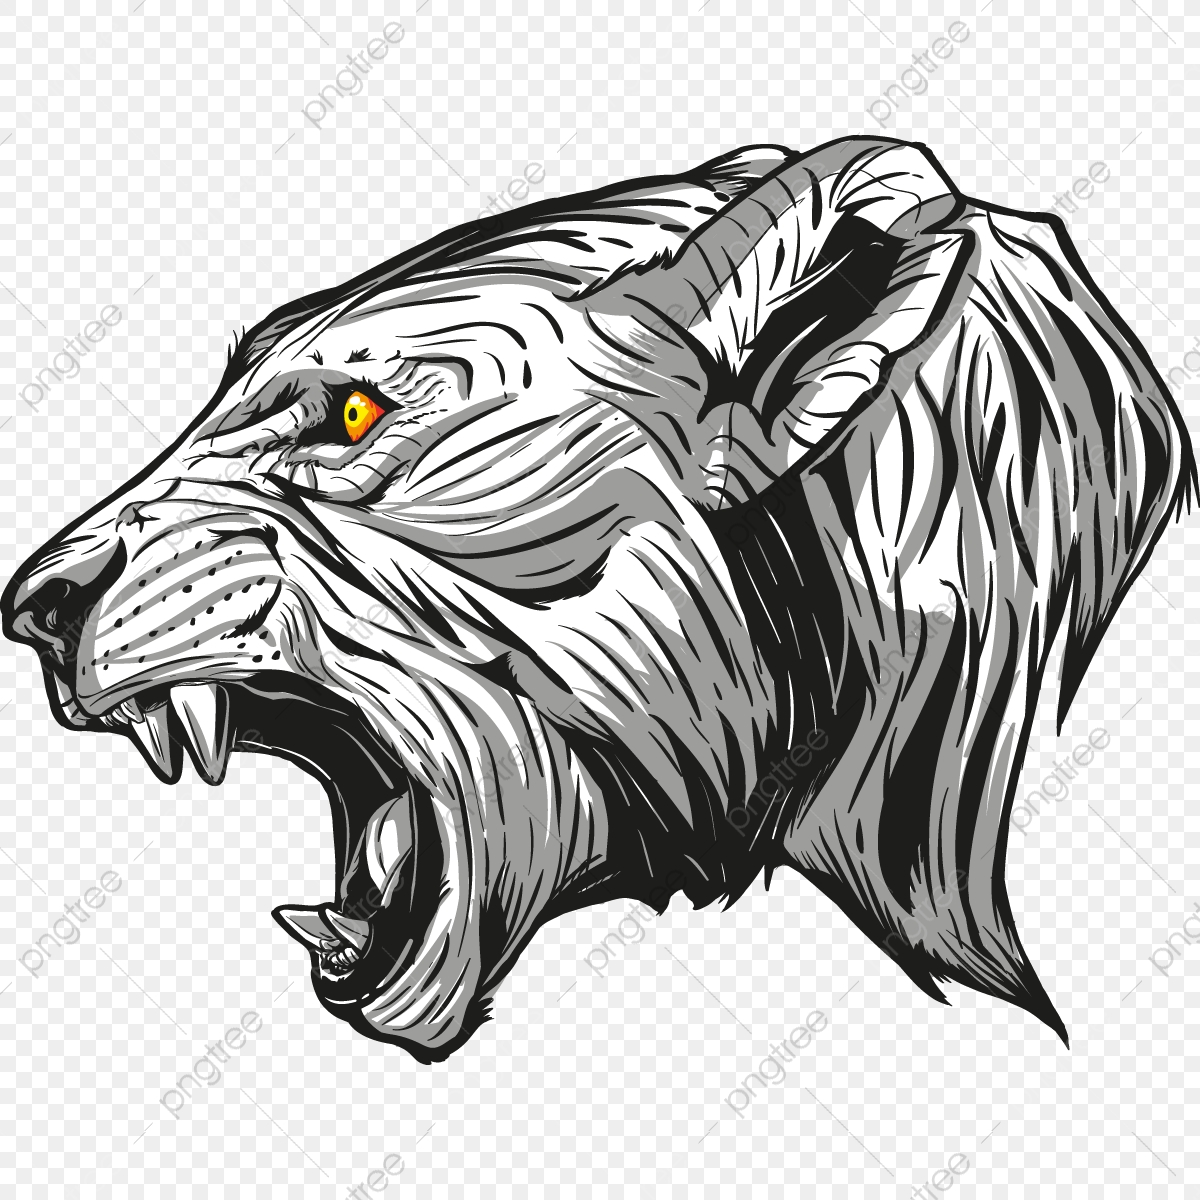 Lion Head Lineart Lion King Clipart Infographics Sketch Png And Vector With Transparent Background For Free Download Pencil art drawings tattoo drawings tattoo art lion drawing simple lion head tattoos piercing tattoo piercings coloring for kids lions. https pngtree com freepng lion head lineart 5048736 html